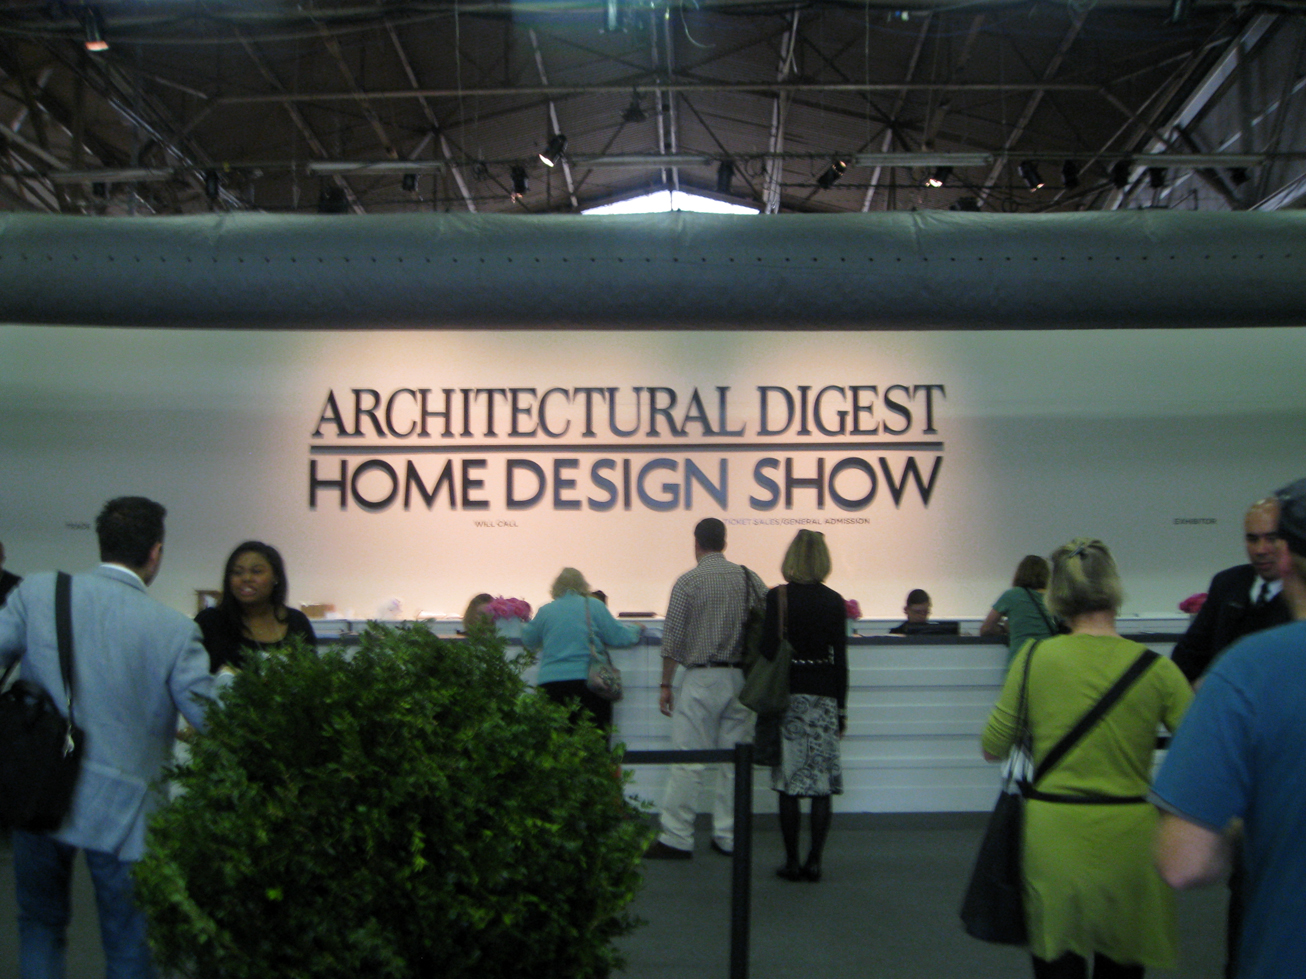 architectural digest home show features artisan crafted furniture above more than 400 brands are participating in the interior design show top of page furnishings by bddw